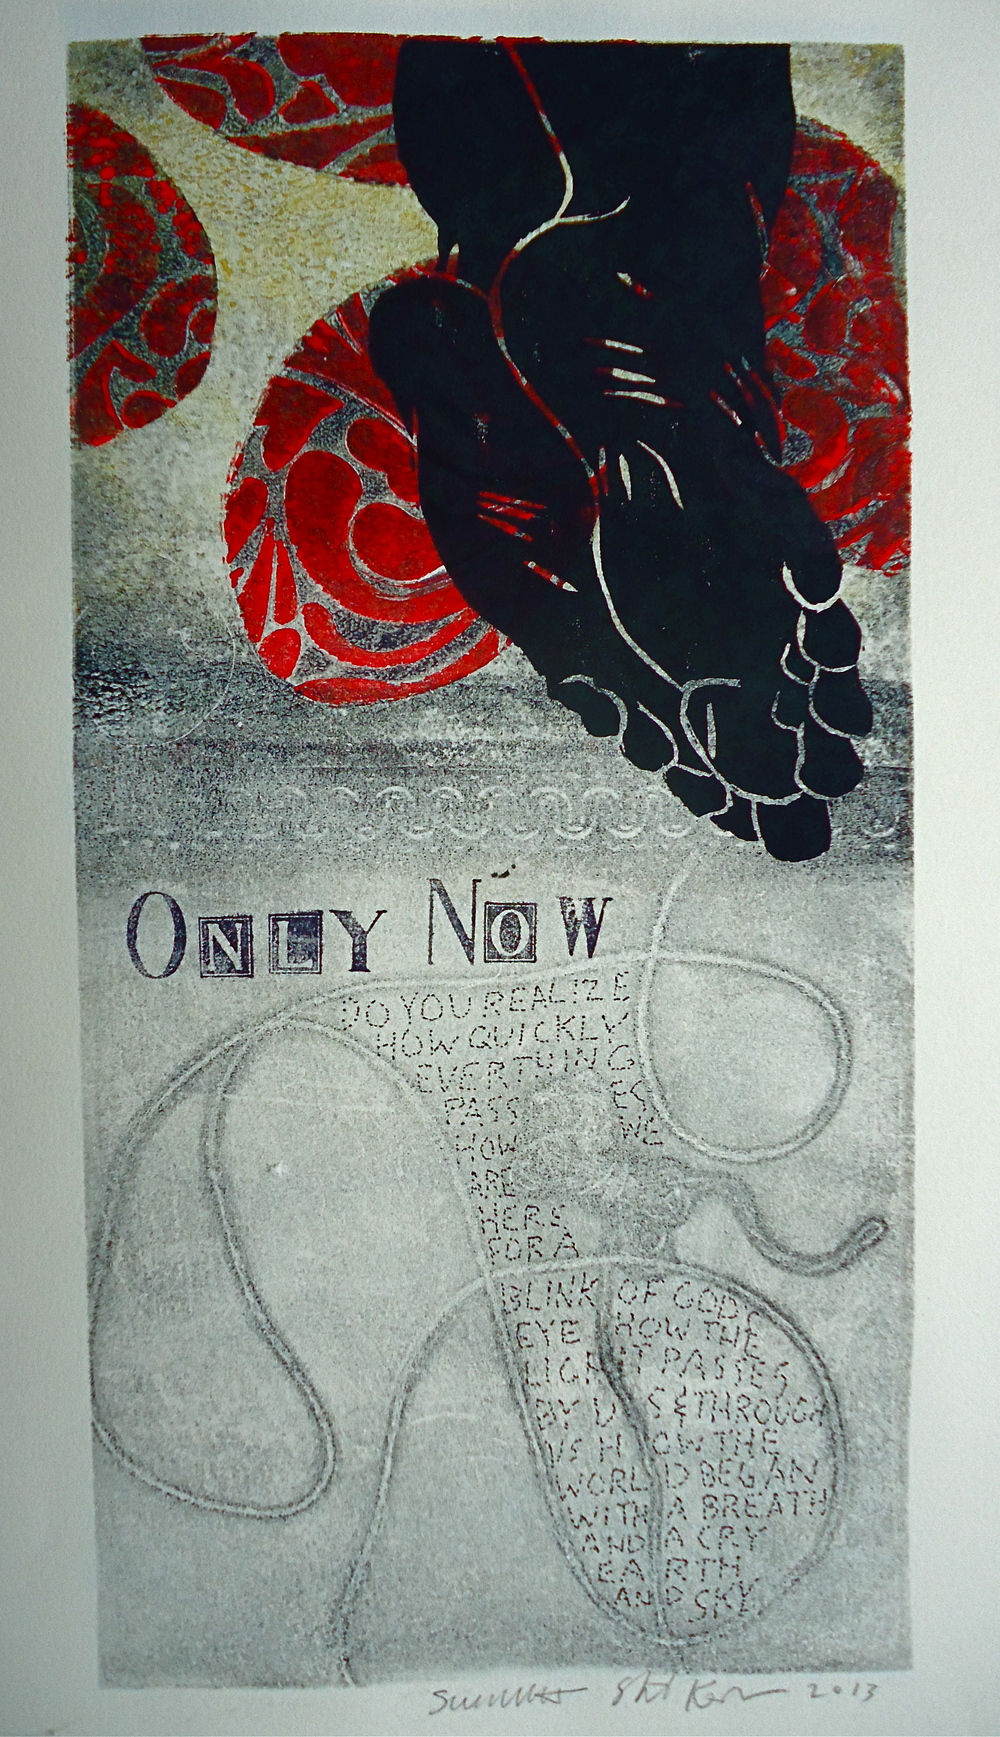 Only Now   6 x 12 inches  mixed media  image: Susan Webster  hand written and stamped text: Stuart Kestenbaum  2013